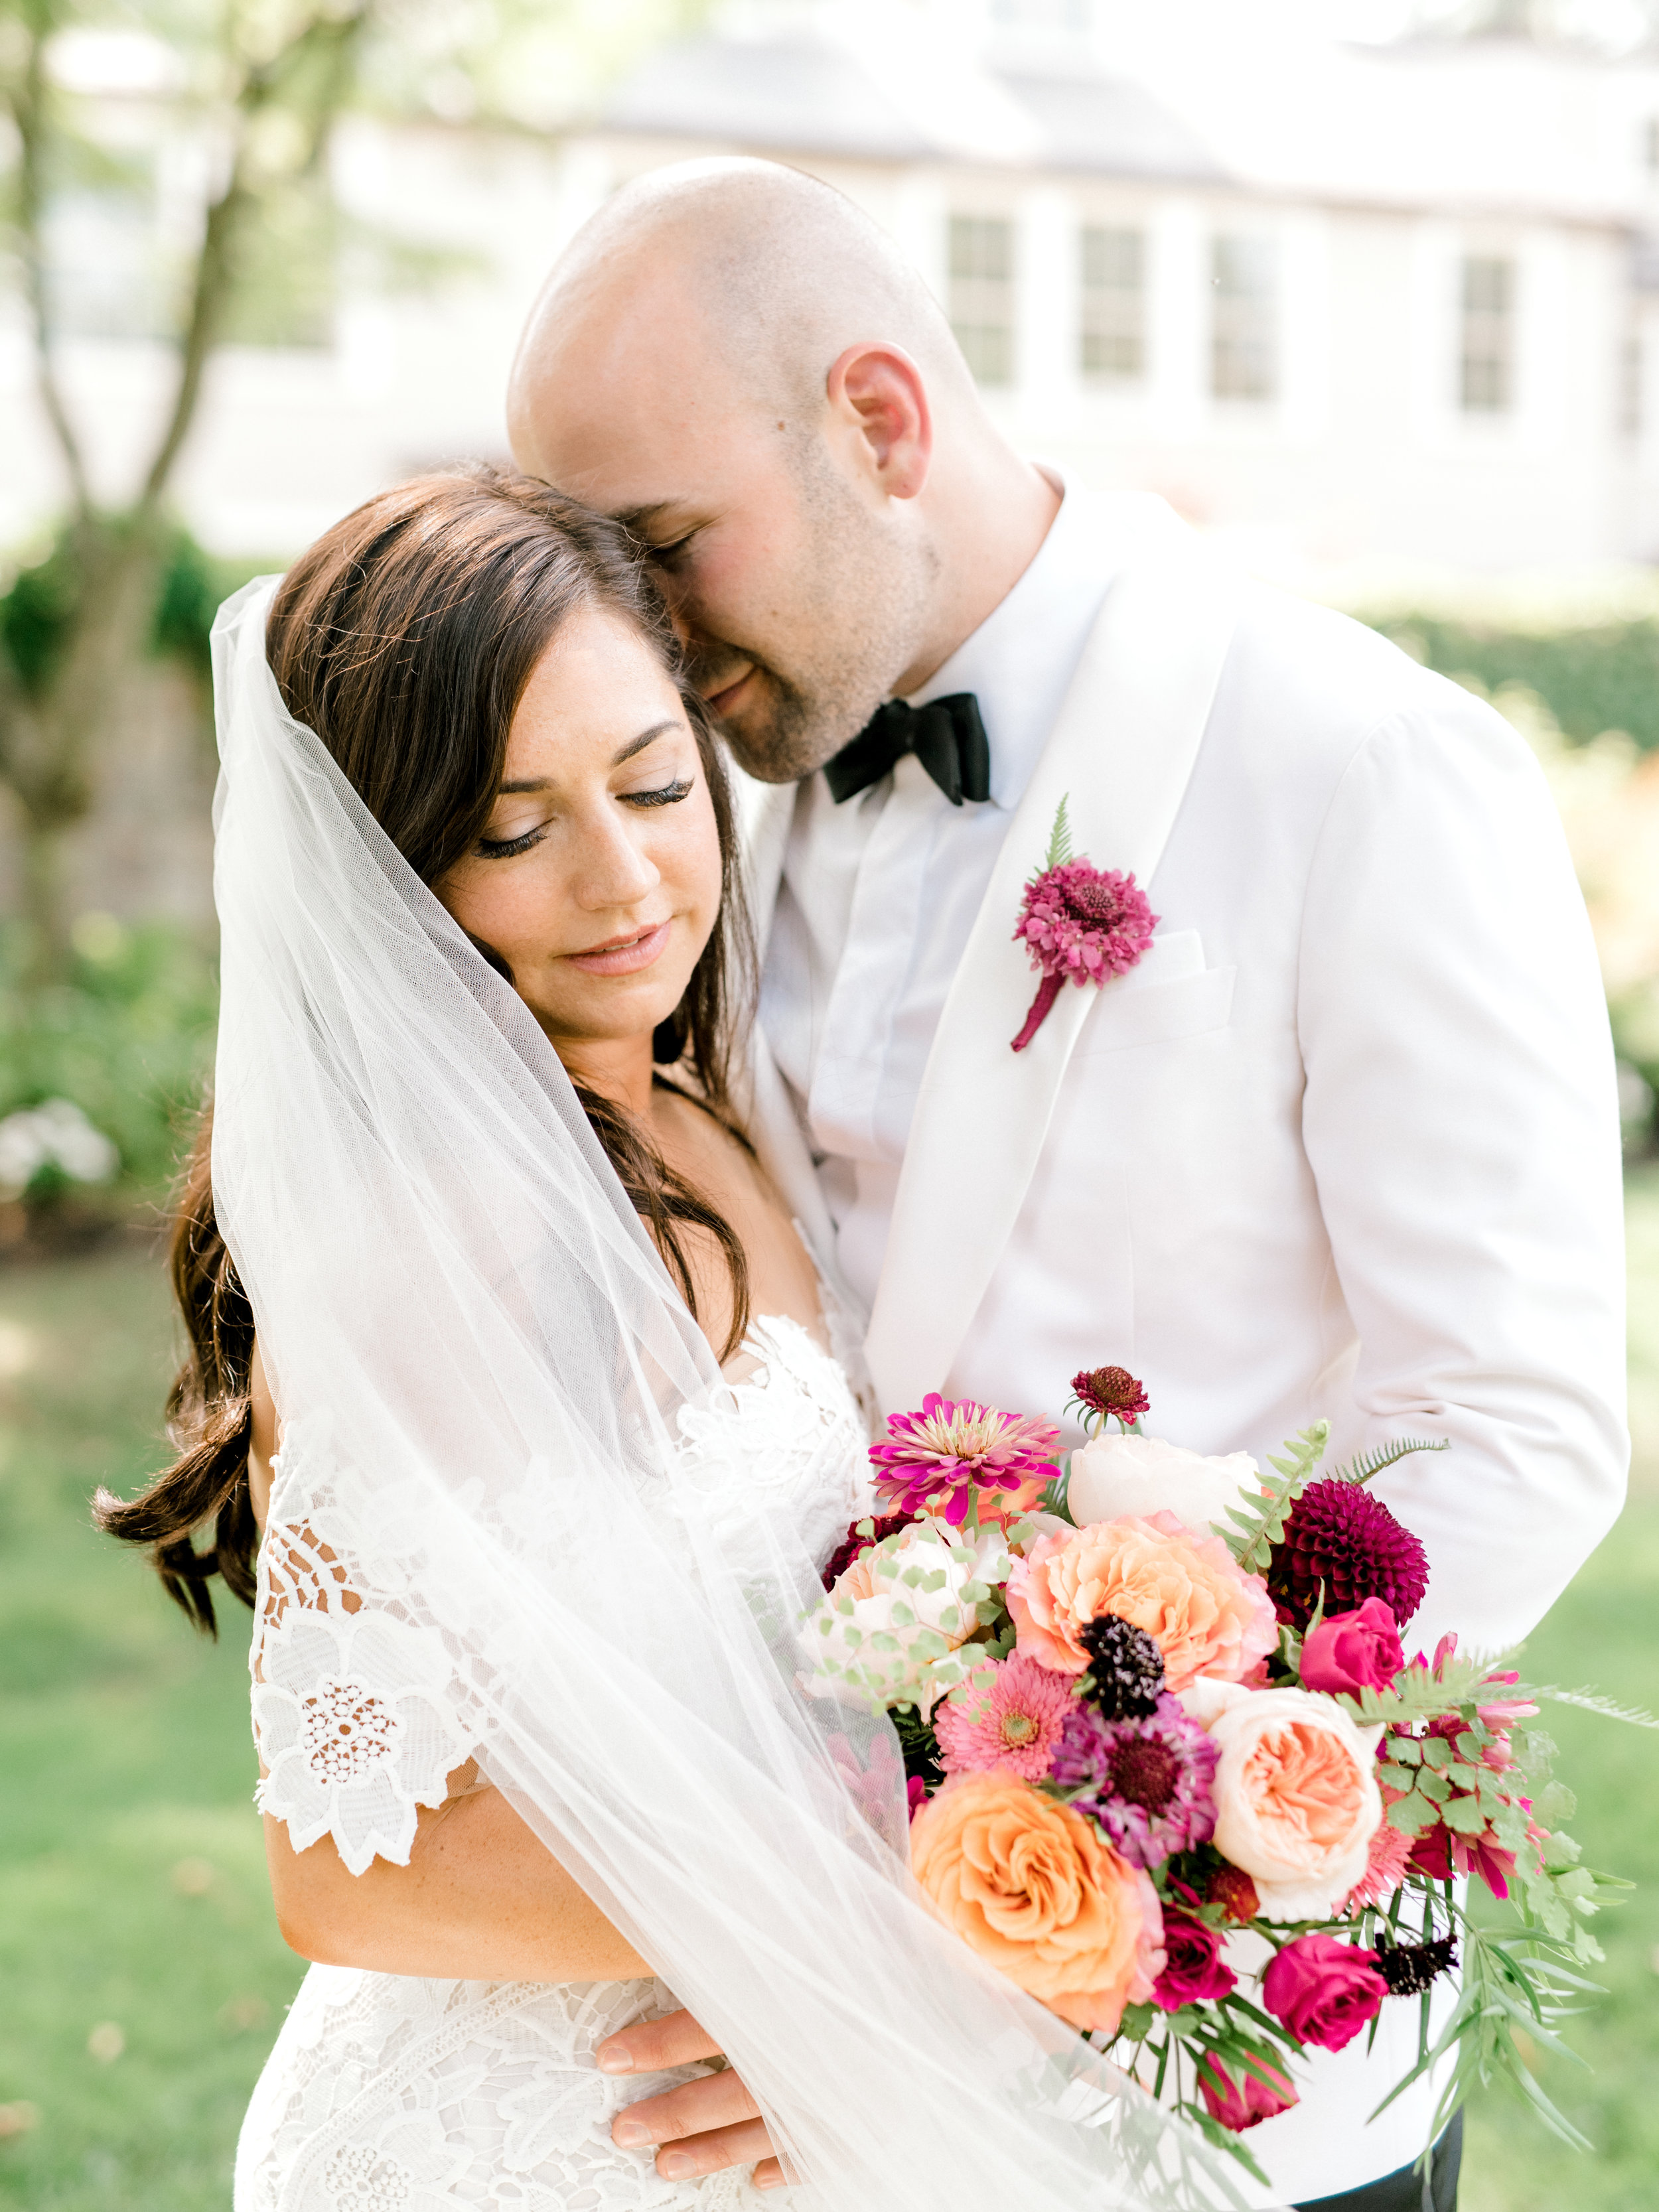 Lindsey and James share an intimate moment before the ceremony for their colorful and modern summer wedding day at Hotel du Village.